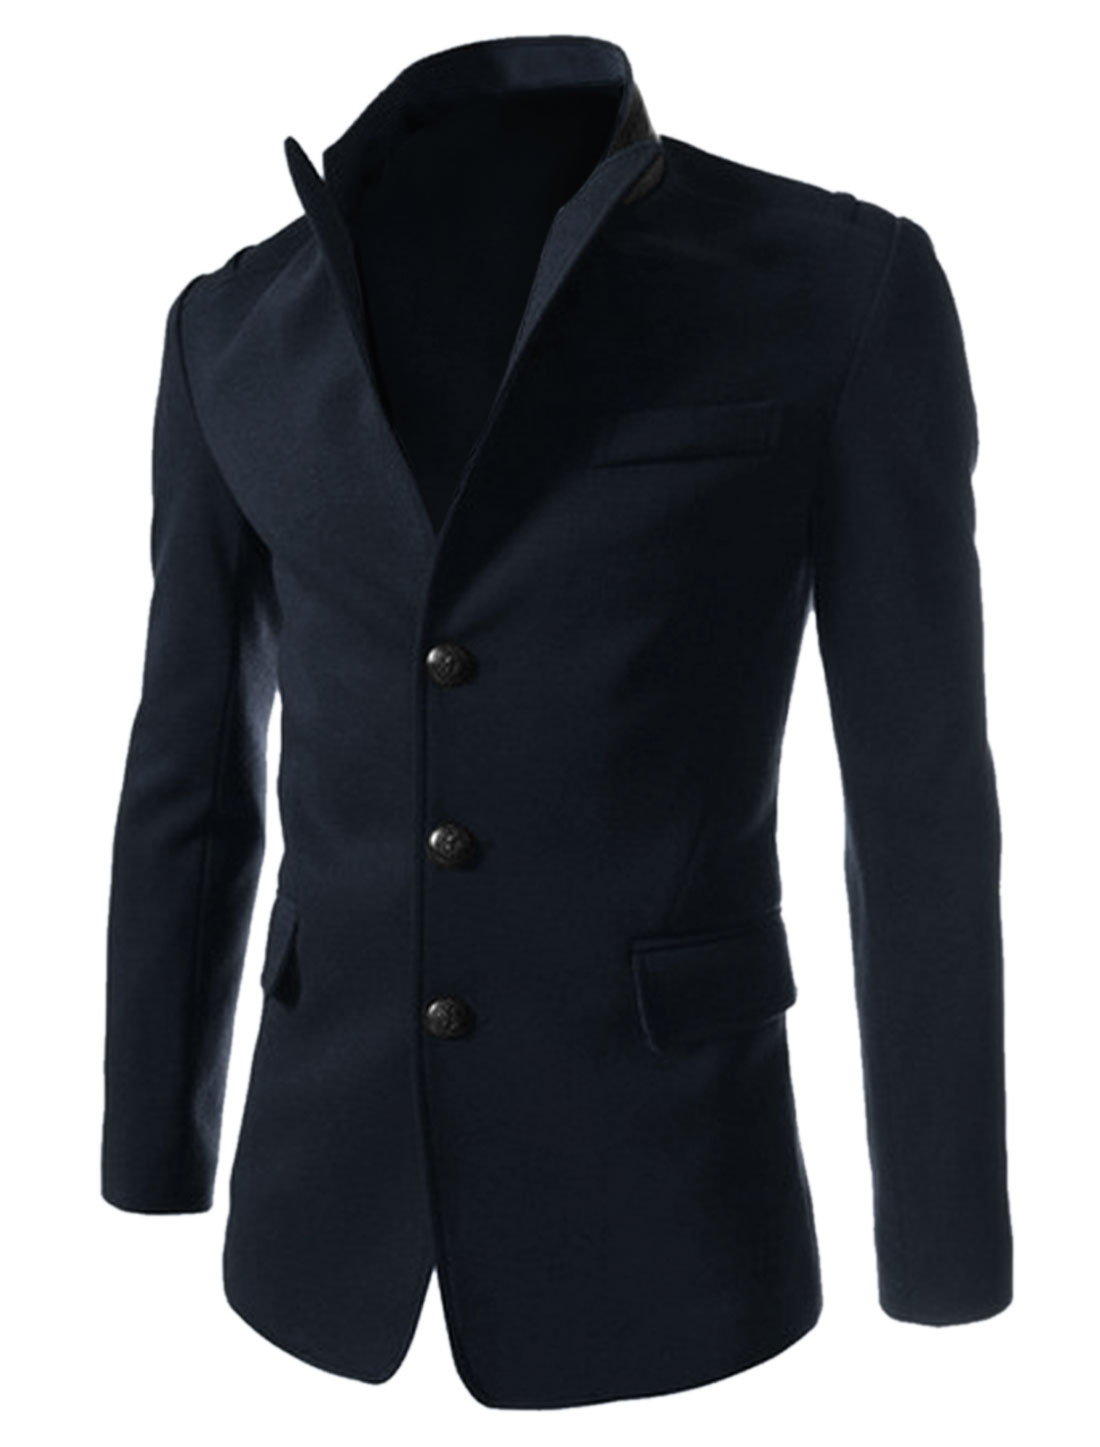 Men Peaked Lapel Long Sleeves Button Closure Fashion Blazer Navy Blue M